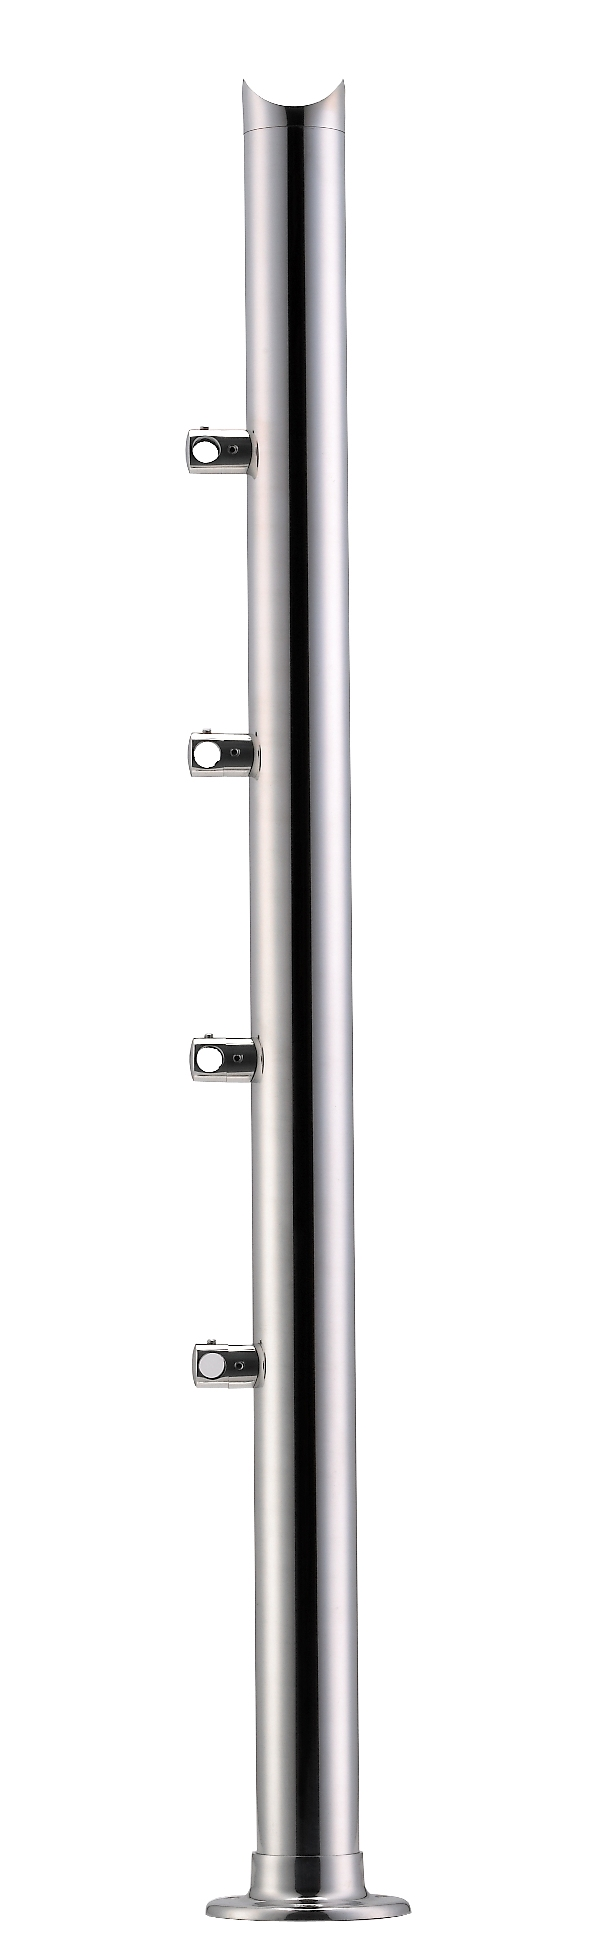 Stainless Steel Balustrade Posts - Tubular - SS:2020476A